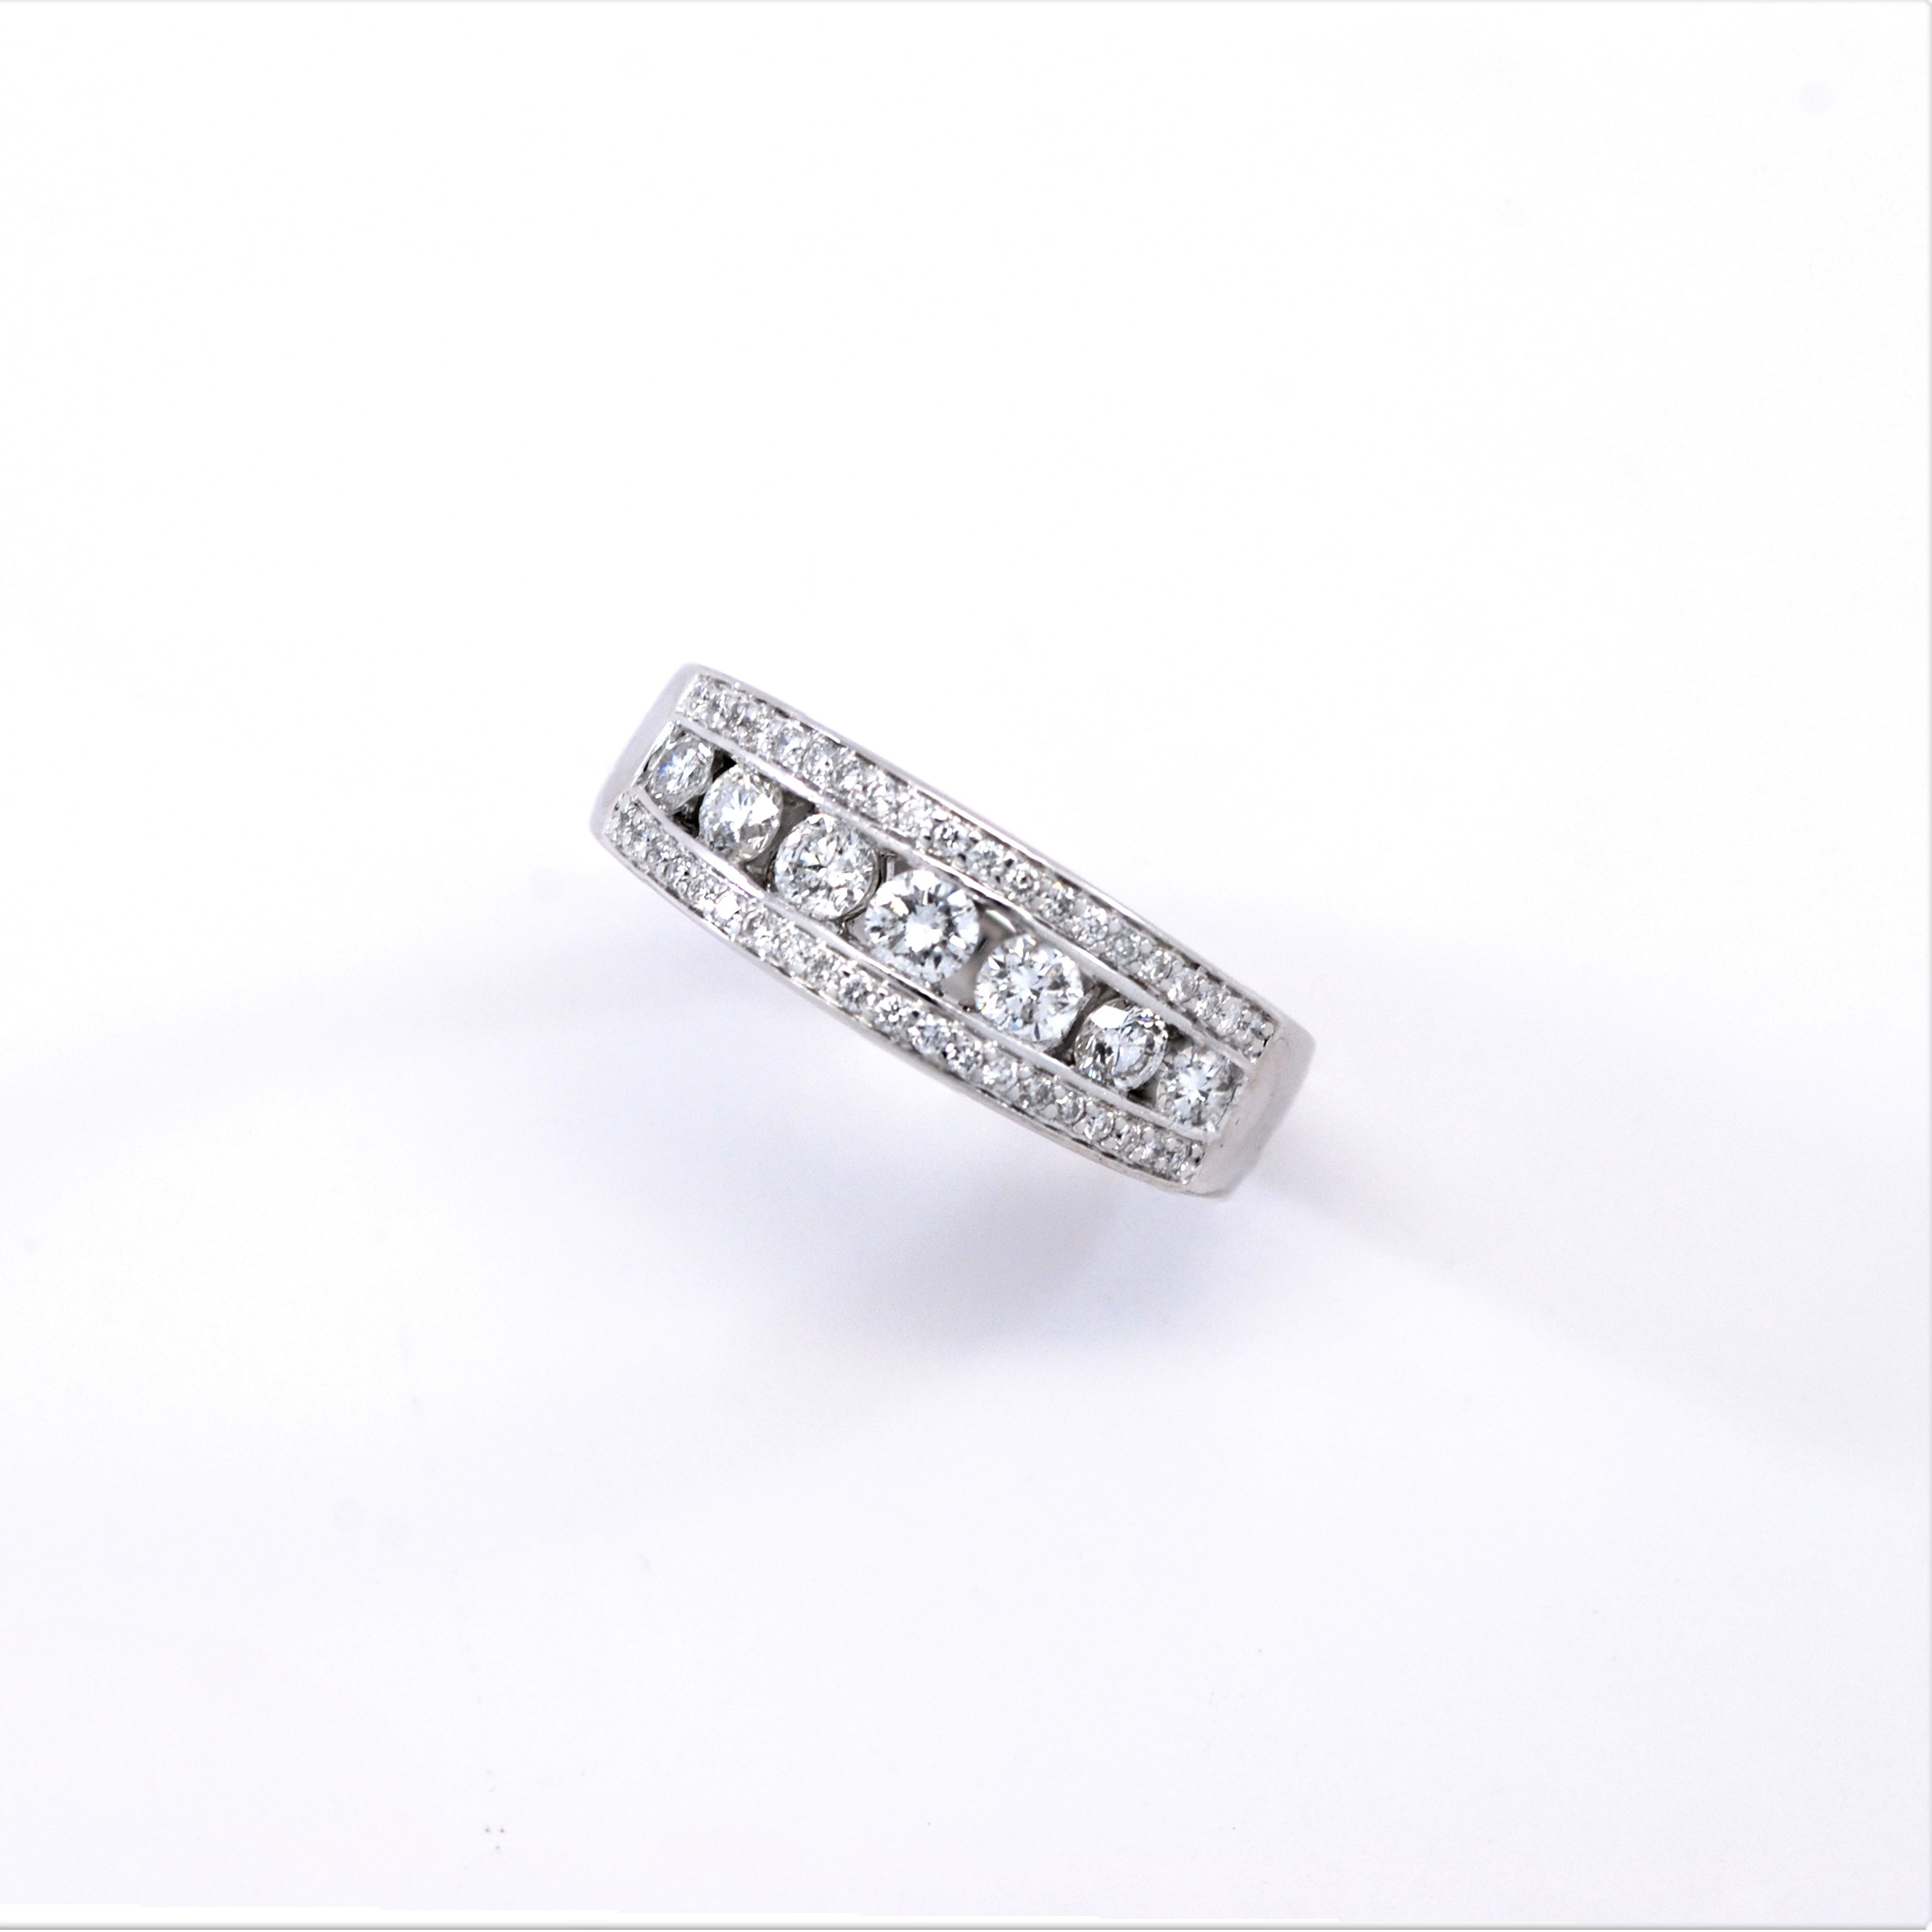 Round Diamond Anniversary Band 1Ctw 14K White Gold With Regard To Most Popular Diamond Anniversary Bands In White Gold (Gallery 13 of 25)